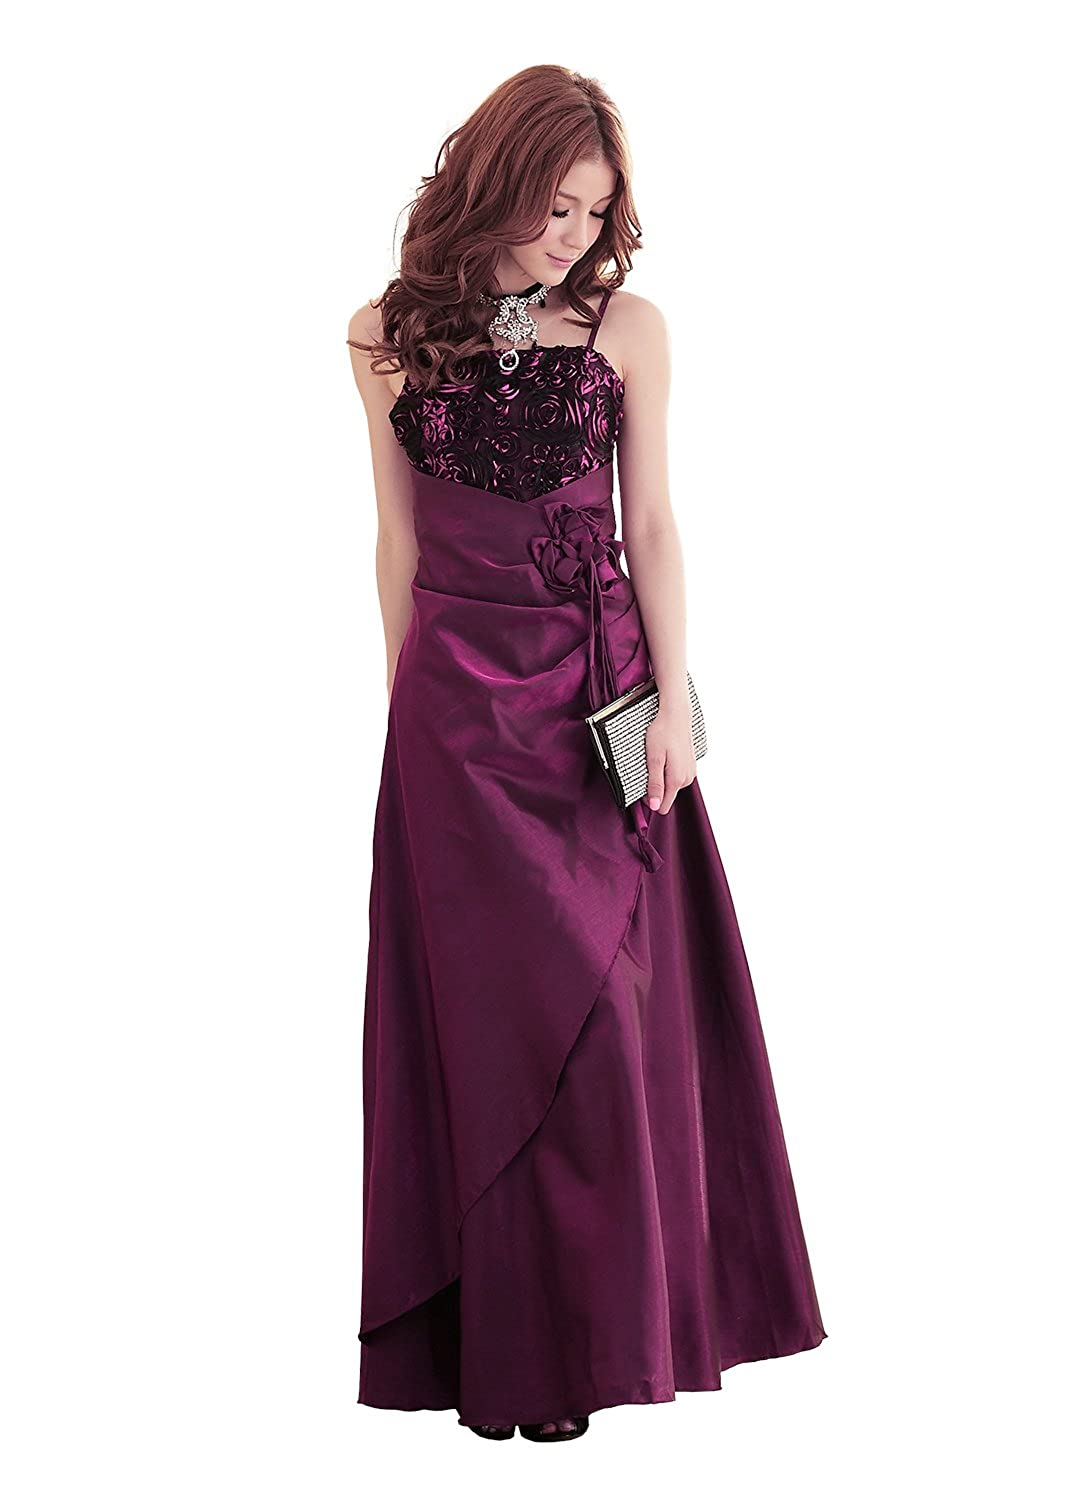 JK2 - Evening dress 3106